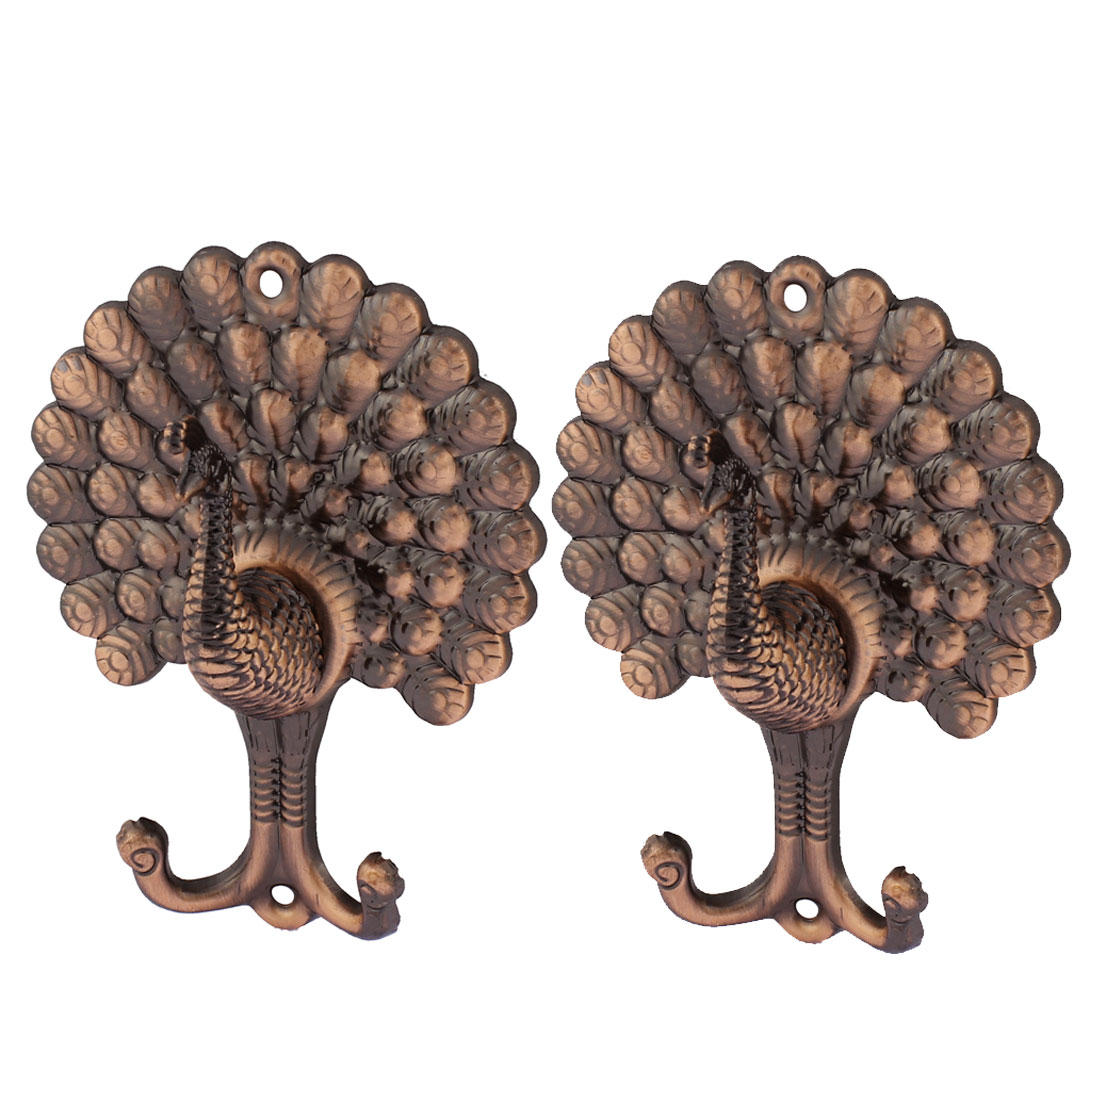 2Pcs Peacock Pattern Drapery Curtain Hook Holder Hanger Hookback Tieback Copper Tone